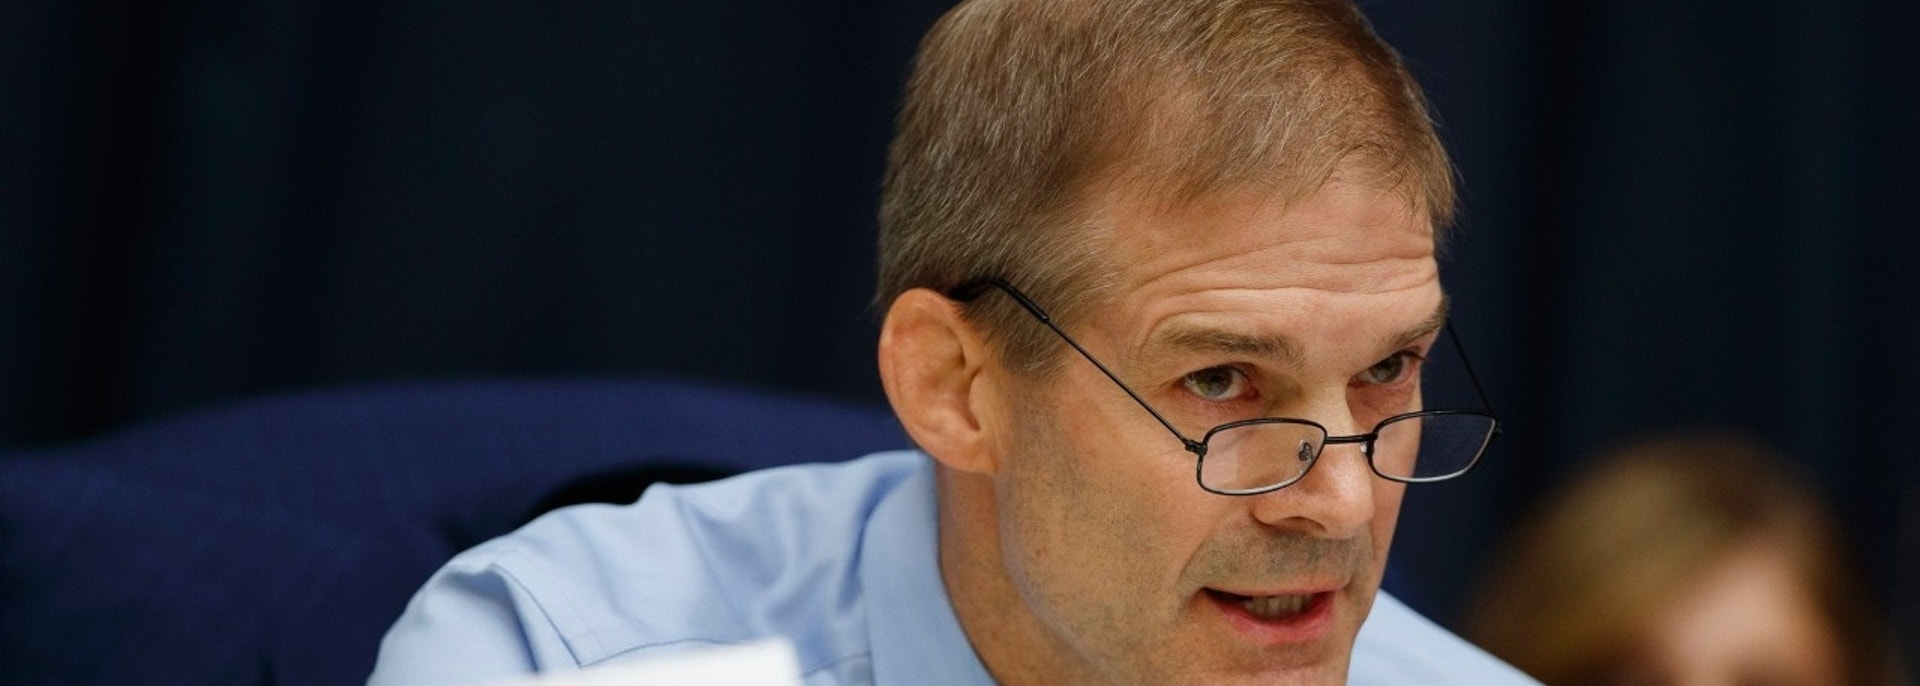 "FILE - In this Thursday, July 12, 2018, file photo, Rep. Jim Jordan, R-Ohio, questions FBI Deputy Assistant Director Peter Strzok during the House Committees on the Judiciary and Oversight and Government Reform hearing on ""Oversight of FBI and DOJ Actions Surrounding the 2016 Election,"" on Capitol Hill in Washington. Jordan, who coached wrestling at Ohio State University, has been interviewed by the law firm investigating allegations that a now-dead team doctor sexually abused male athletes there decades ago. Jordan's spokesman says the congressman spoke Monday, July 16, 2018, with the firm looking into allegations against Dr. Richard Strauss and how the school responded to any complaints about Strauss. (AP Photo/Evan Vucci, File)"